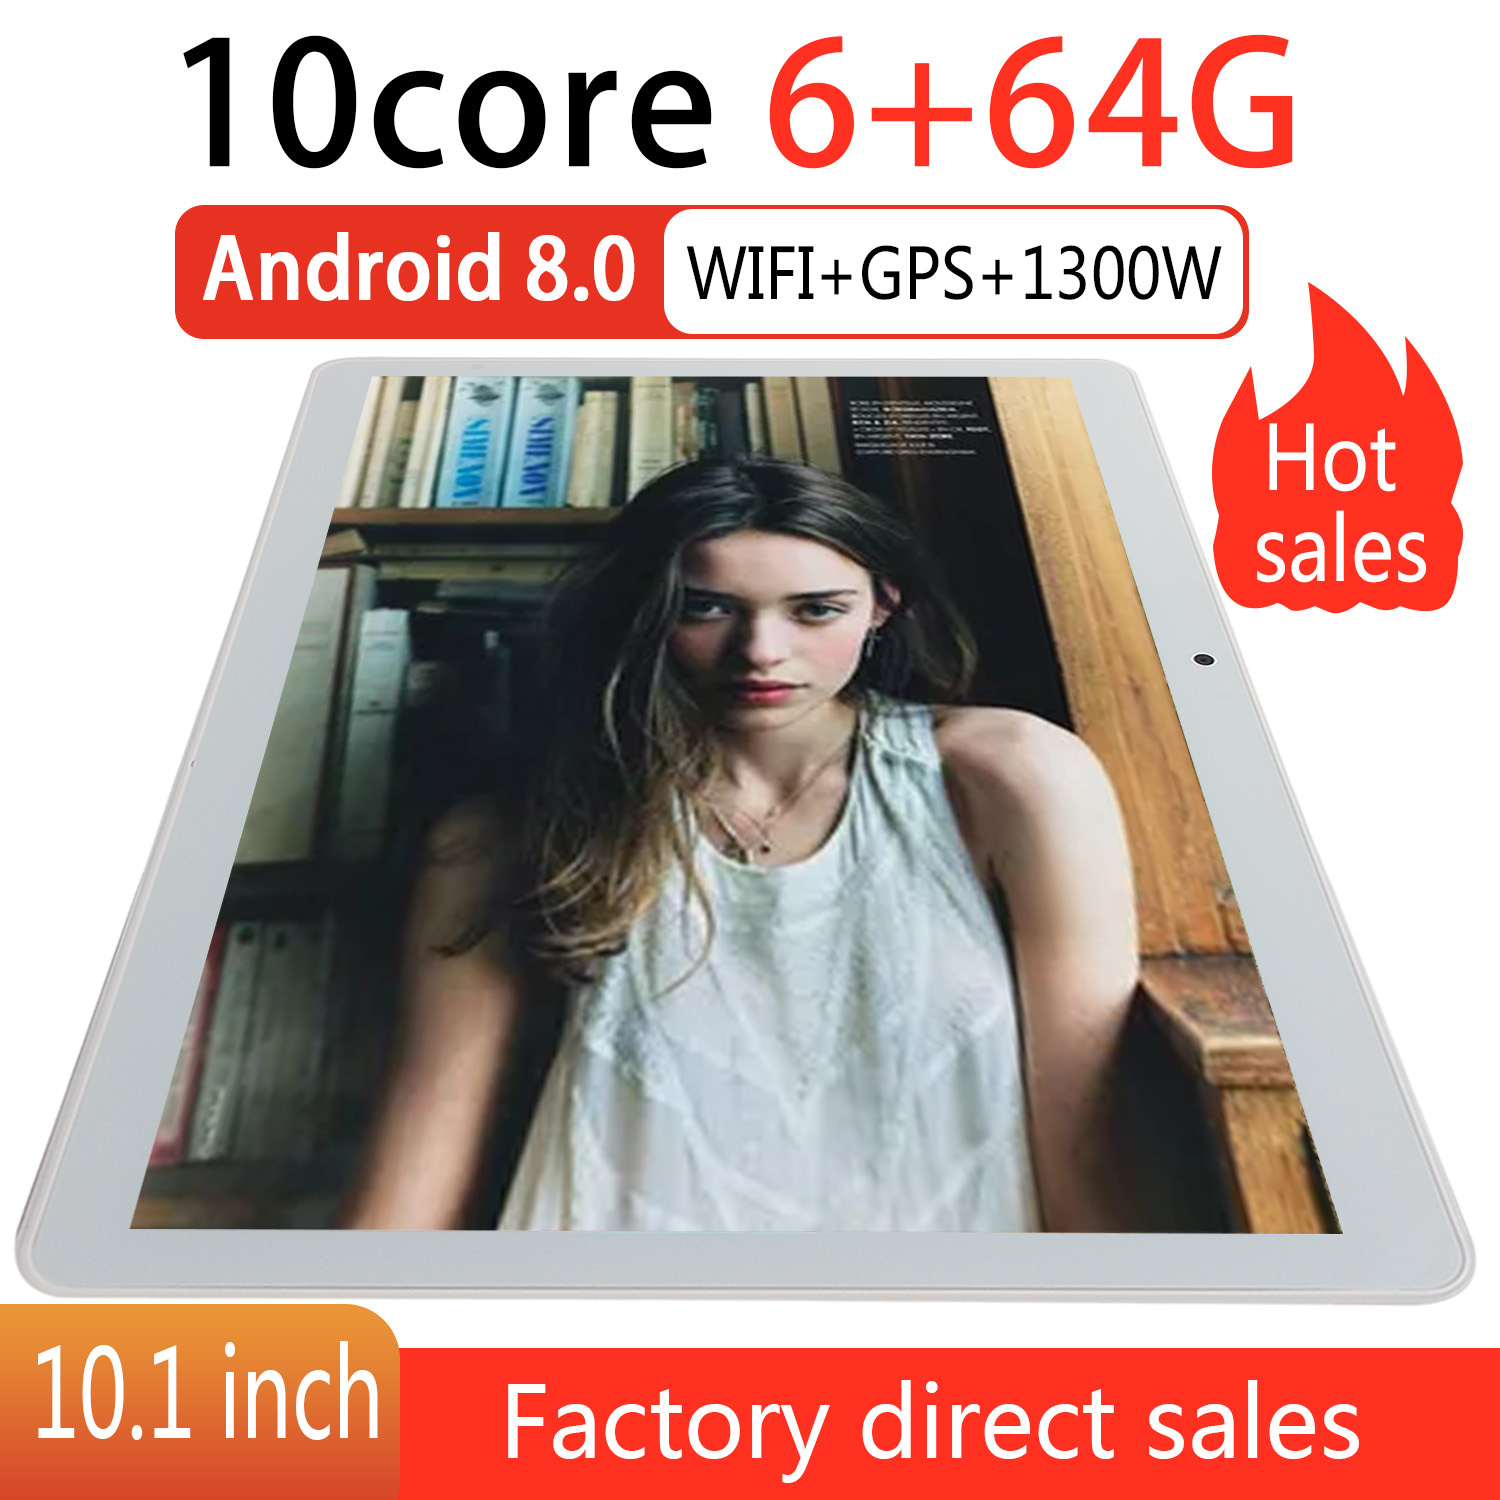 10.1 Inch Tablet Pc Ten Core 3G Phone Call Google Market GPS WiFi FM Bluetooth 10.1 Tablets 6G+64G Android 8.0 Tab